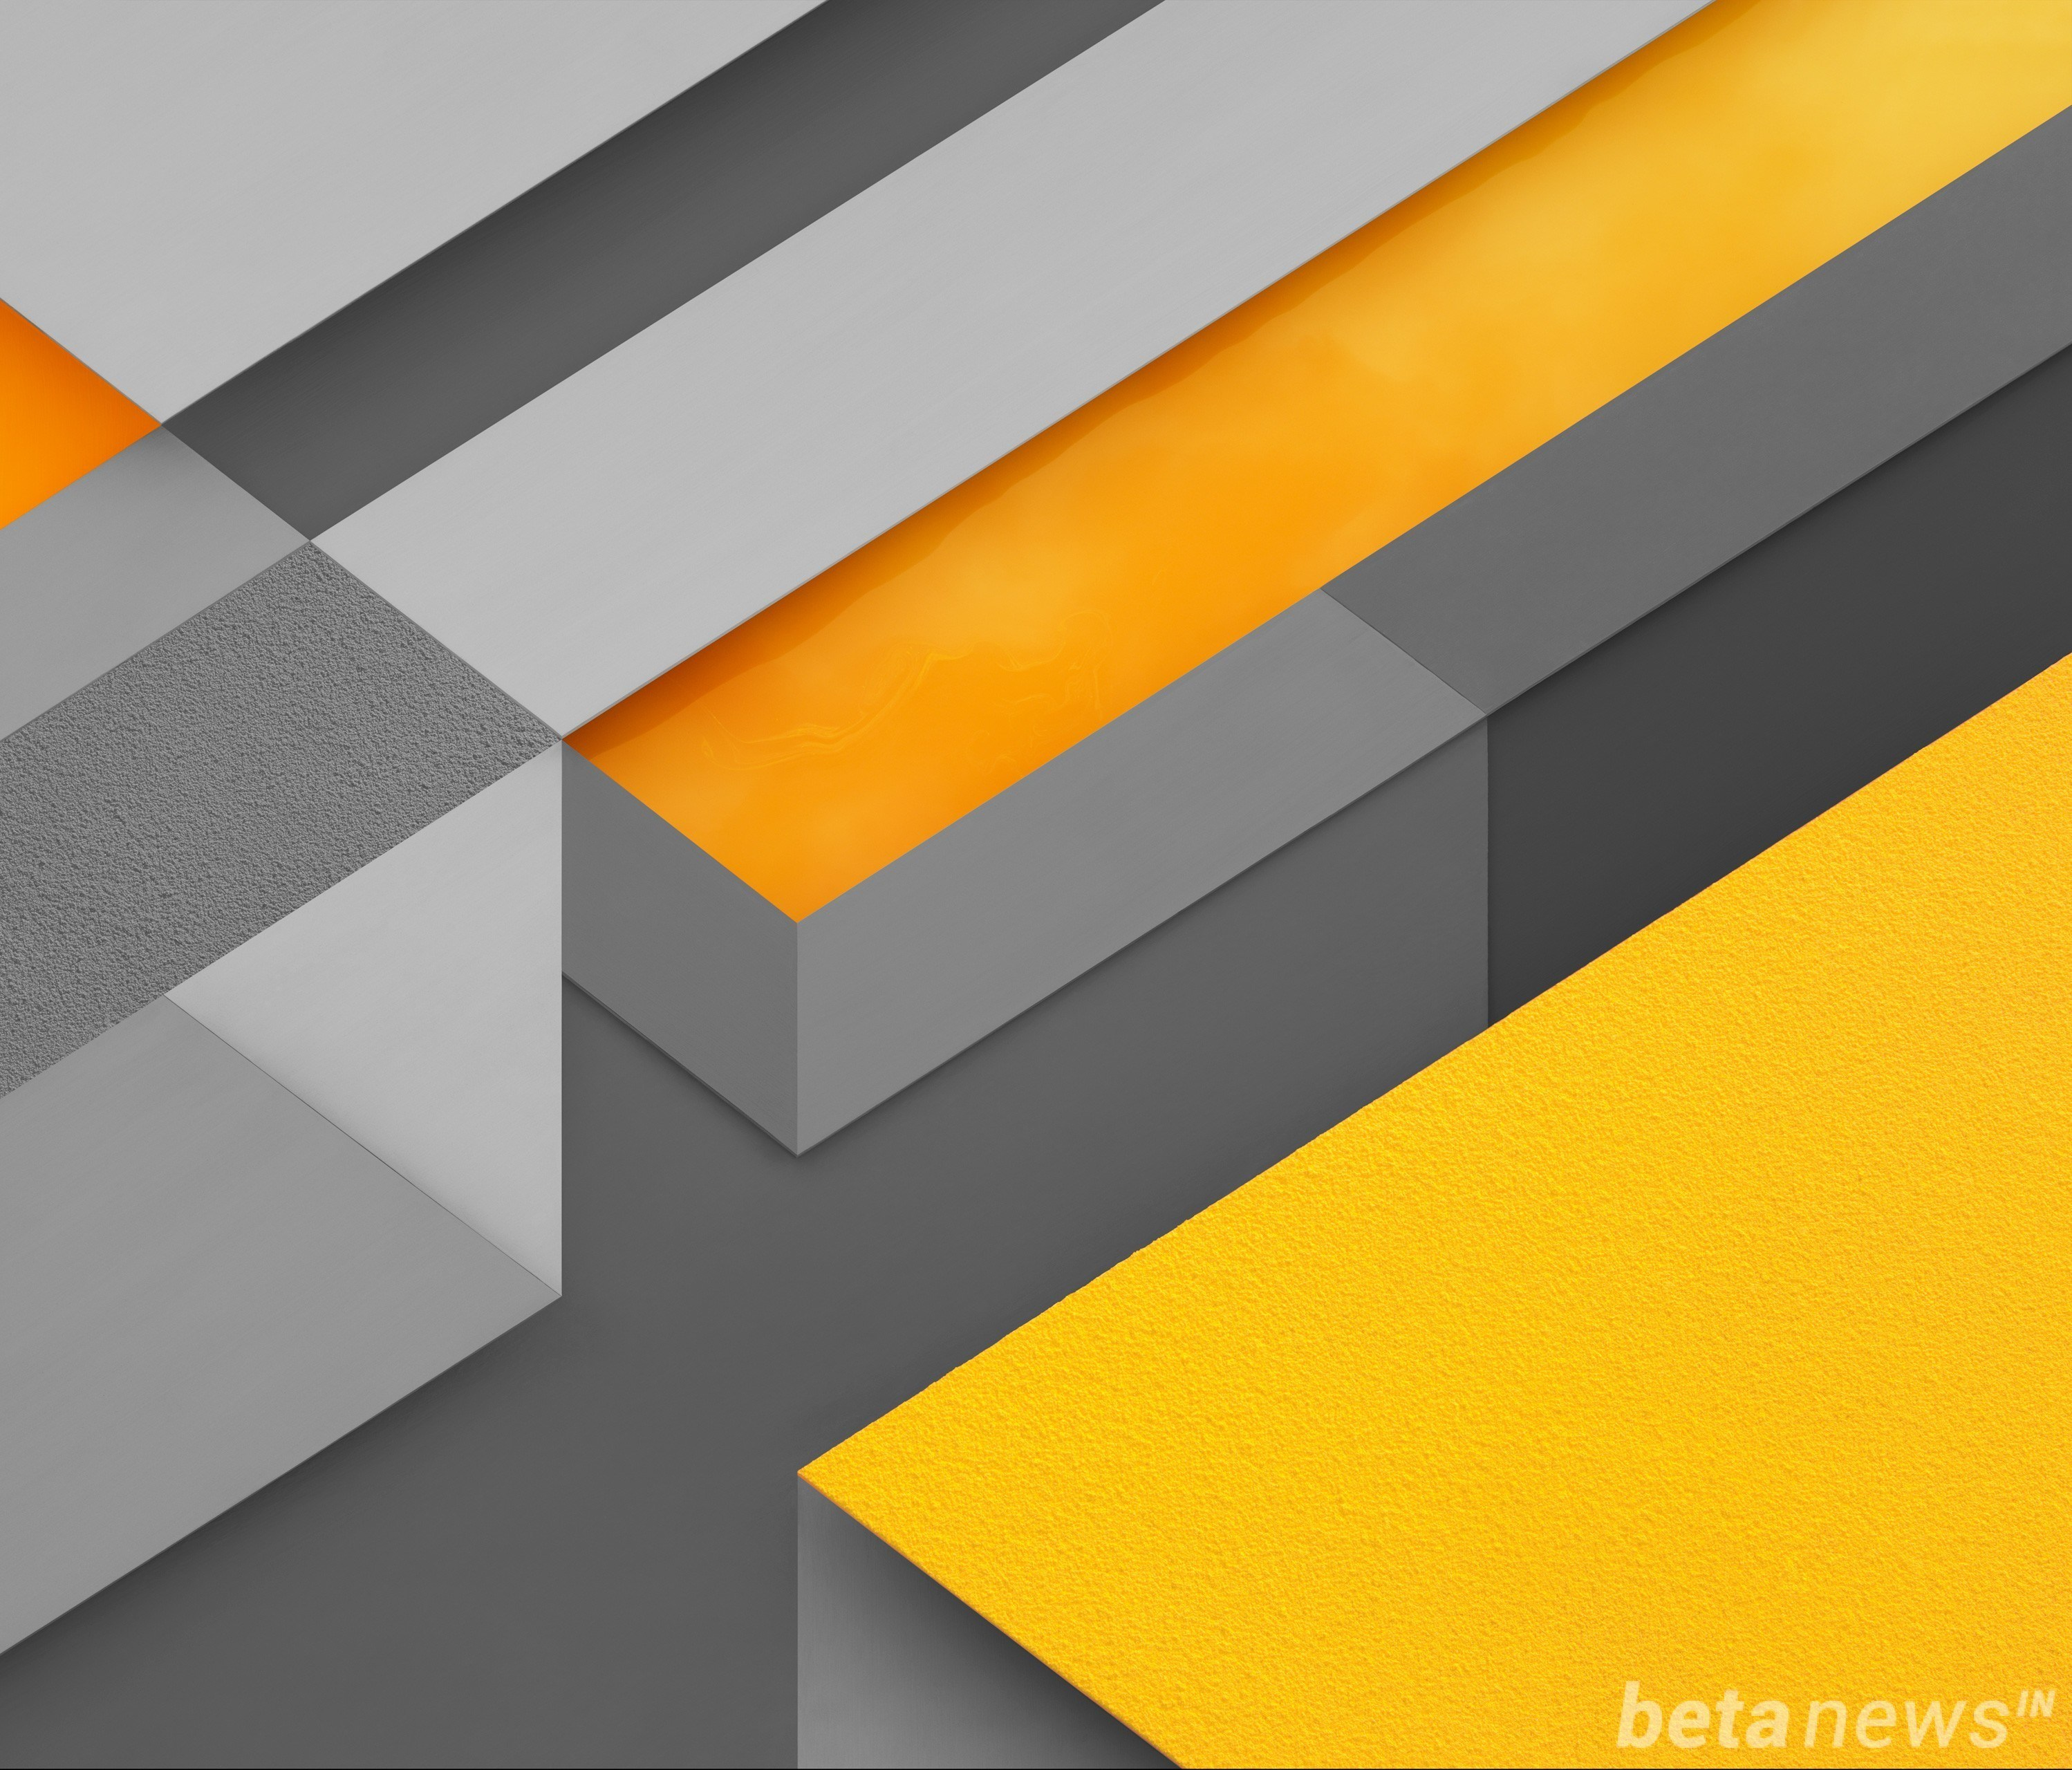 Android 6.0 Marshmallow Stock Wallpapers (betanews.in) 2997x2560